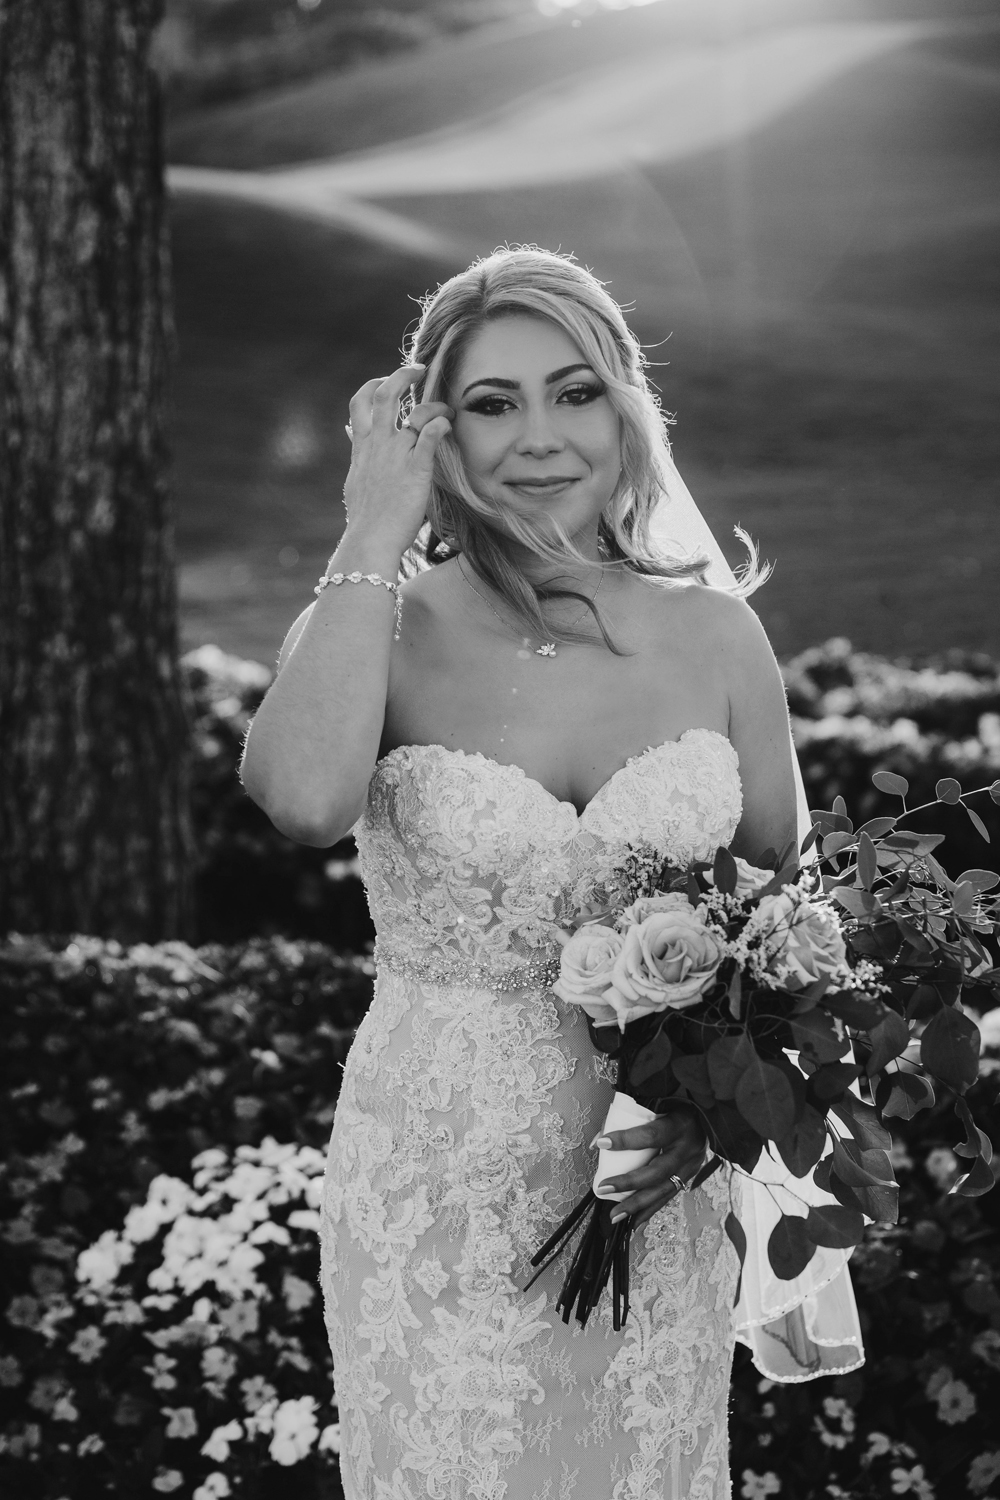 Naples Wedding Photographer, black and white image of bride with her bouquet